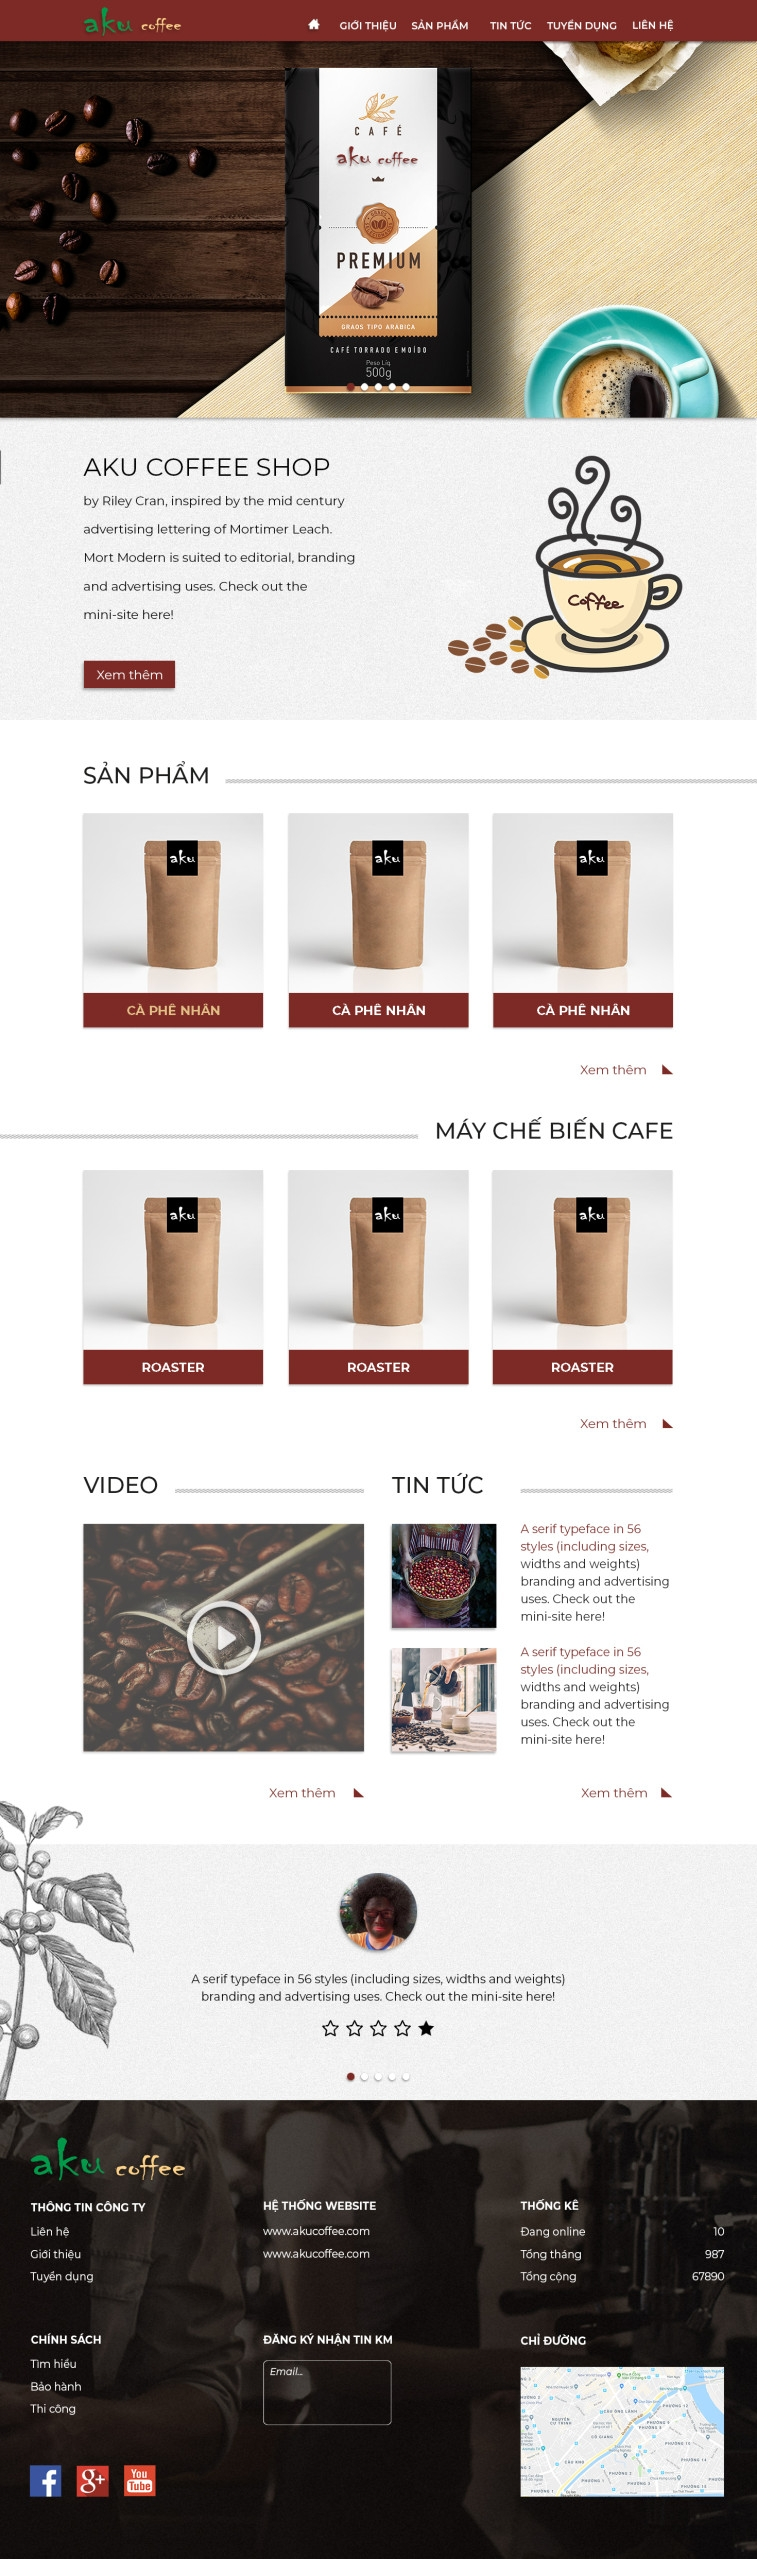 Thiết kế website kinh doanh coffee